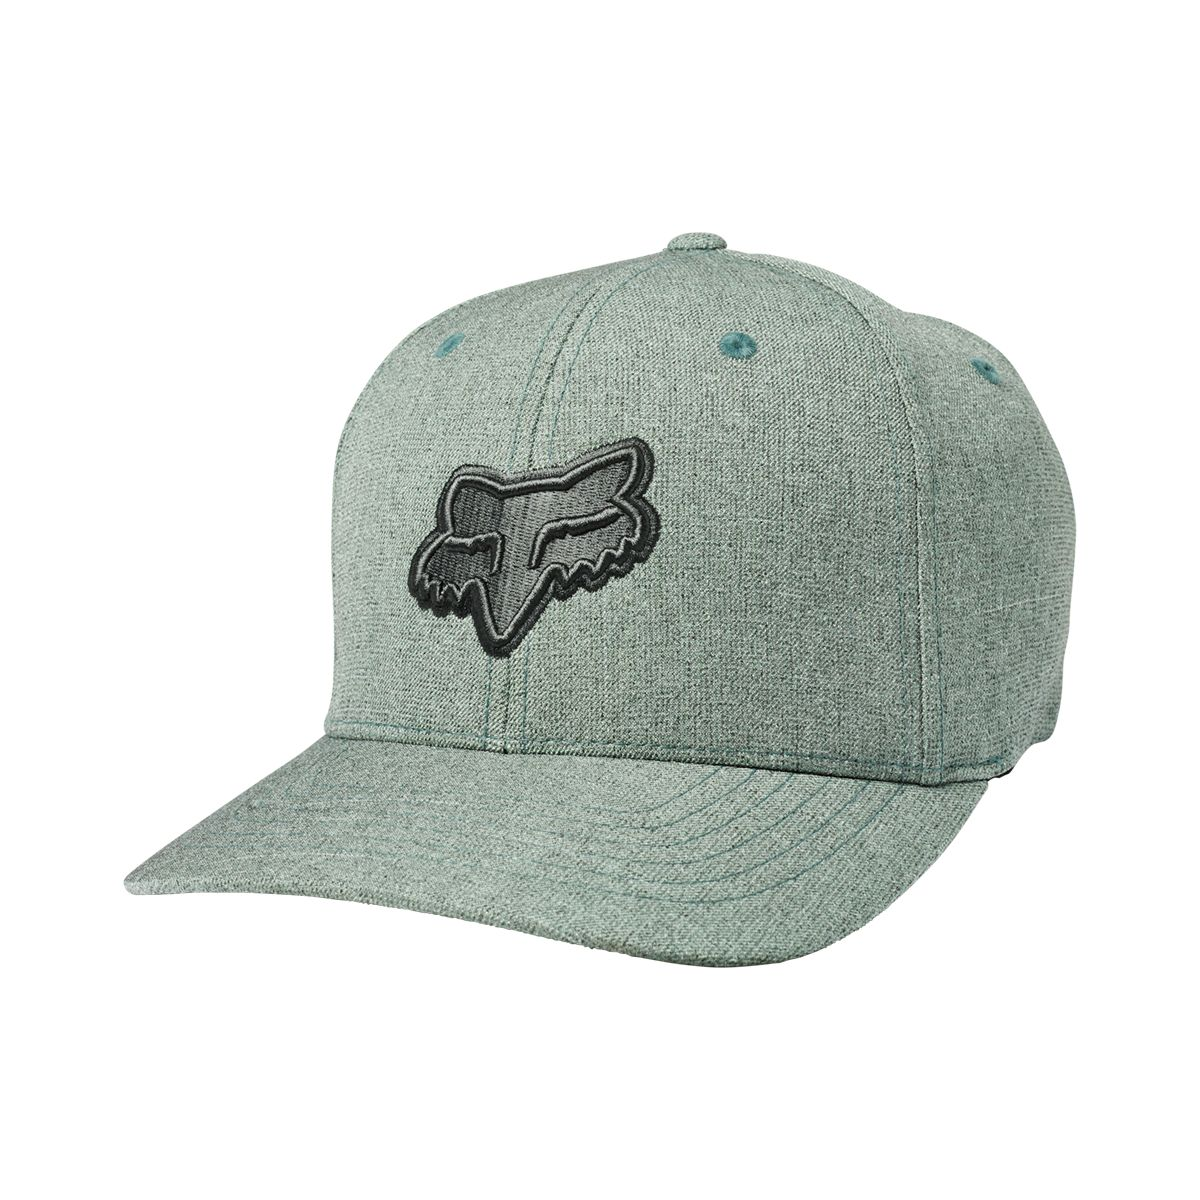 TRANSPOSITION FLEXFIT HAT